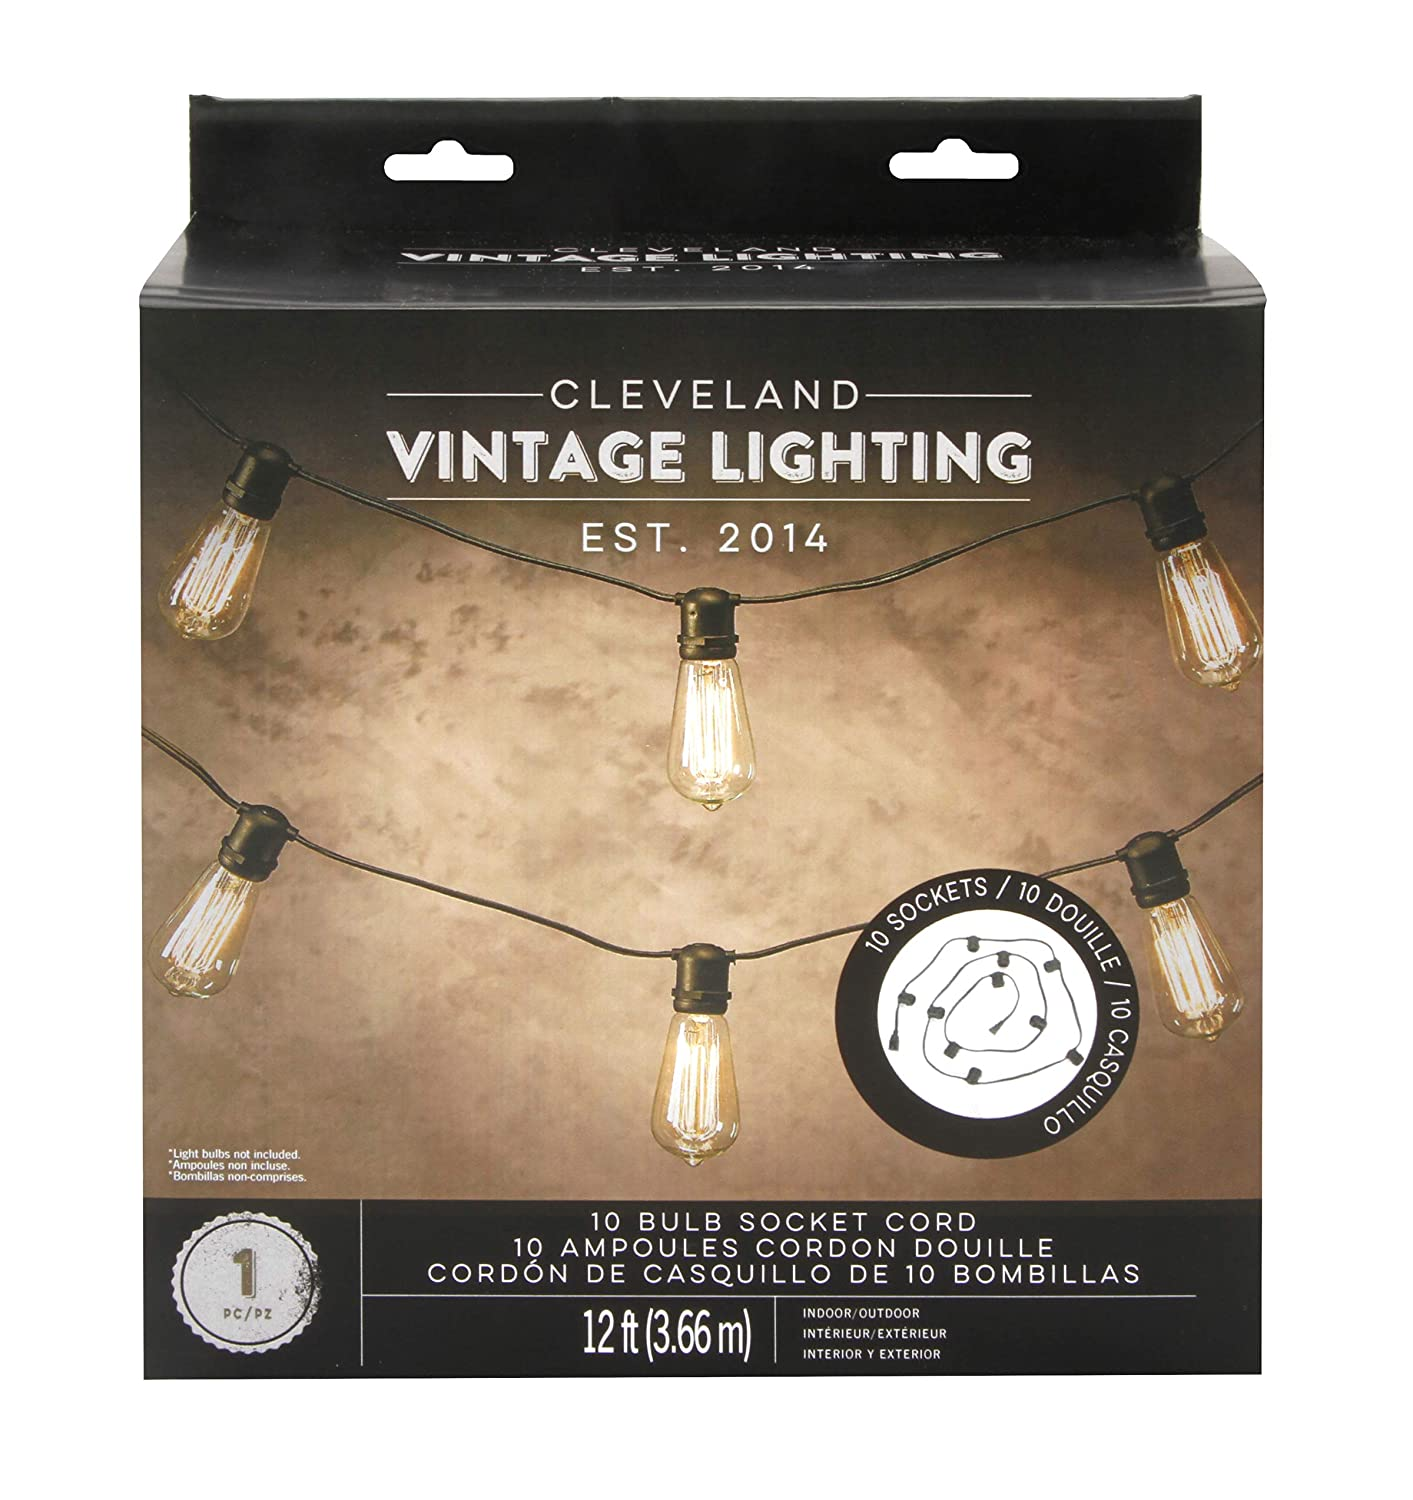 Amazon.com: Cleveland Vintage Lighting CLV105 10 Bulb Socket, Black, 12 feet, Cord: Home & Kitchen